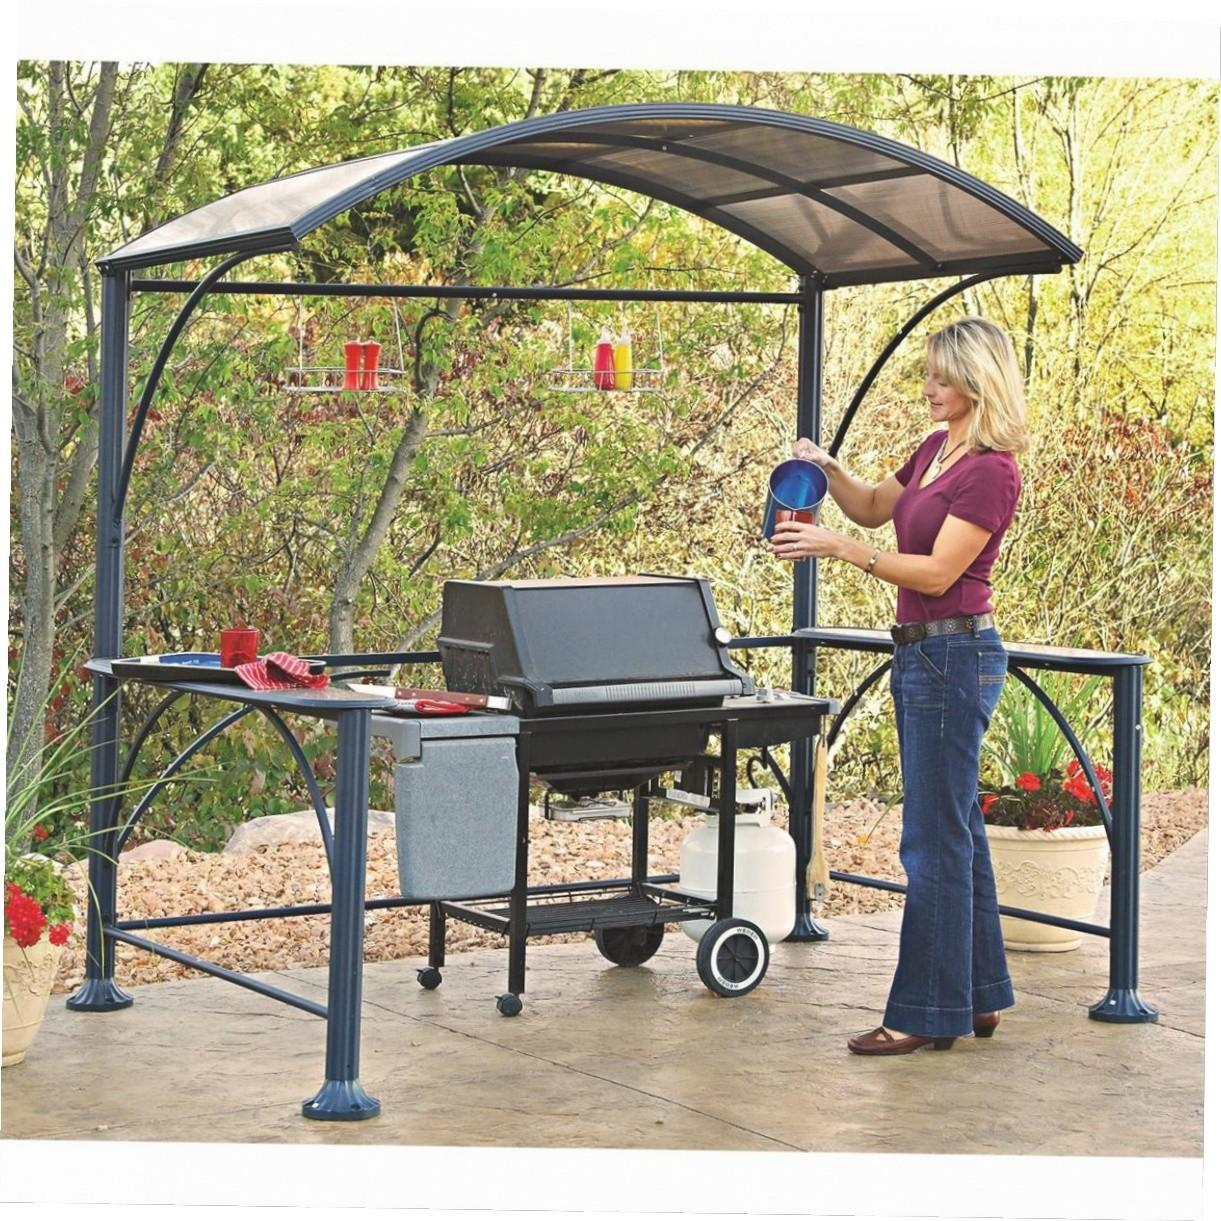 Grill Gazebos Gazebo Ideas